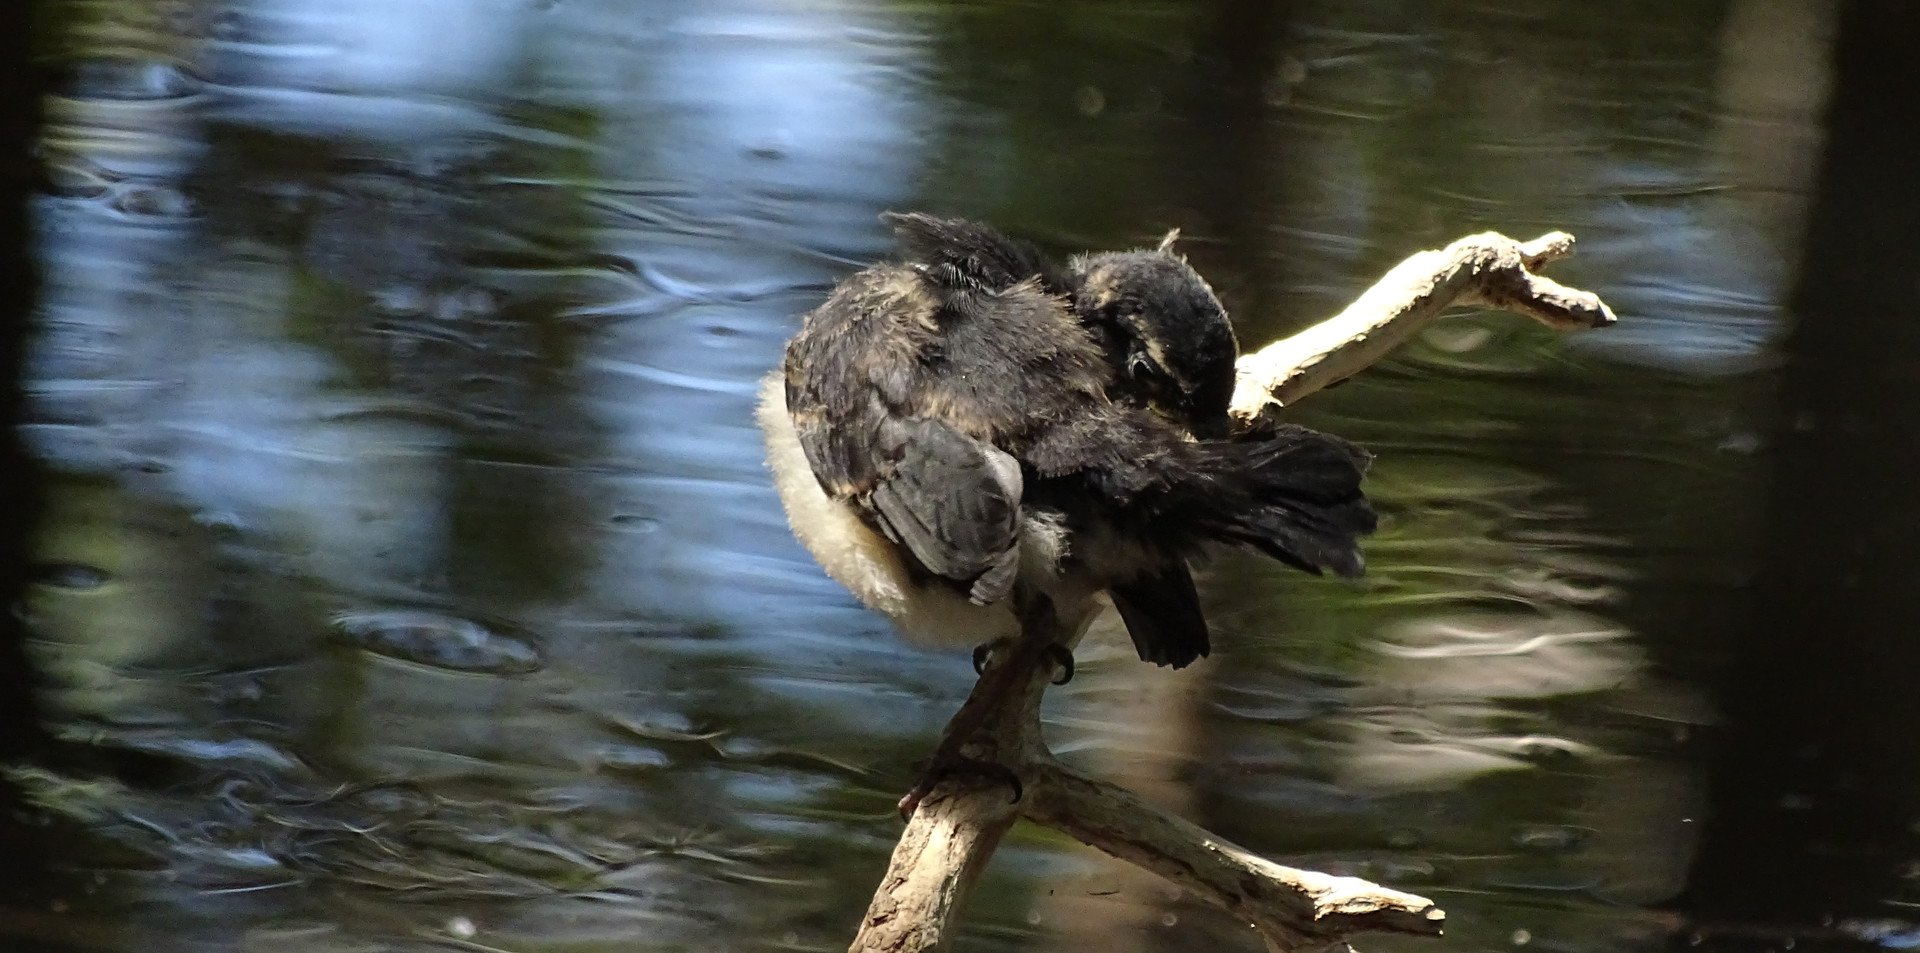 Juvenile Willie Wagtail preening (first day out of the nest)